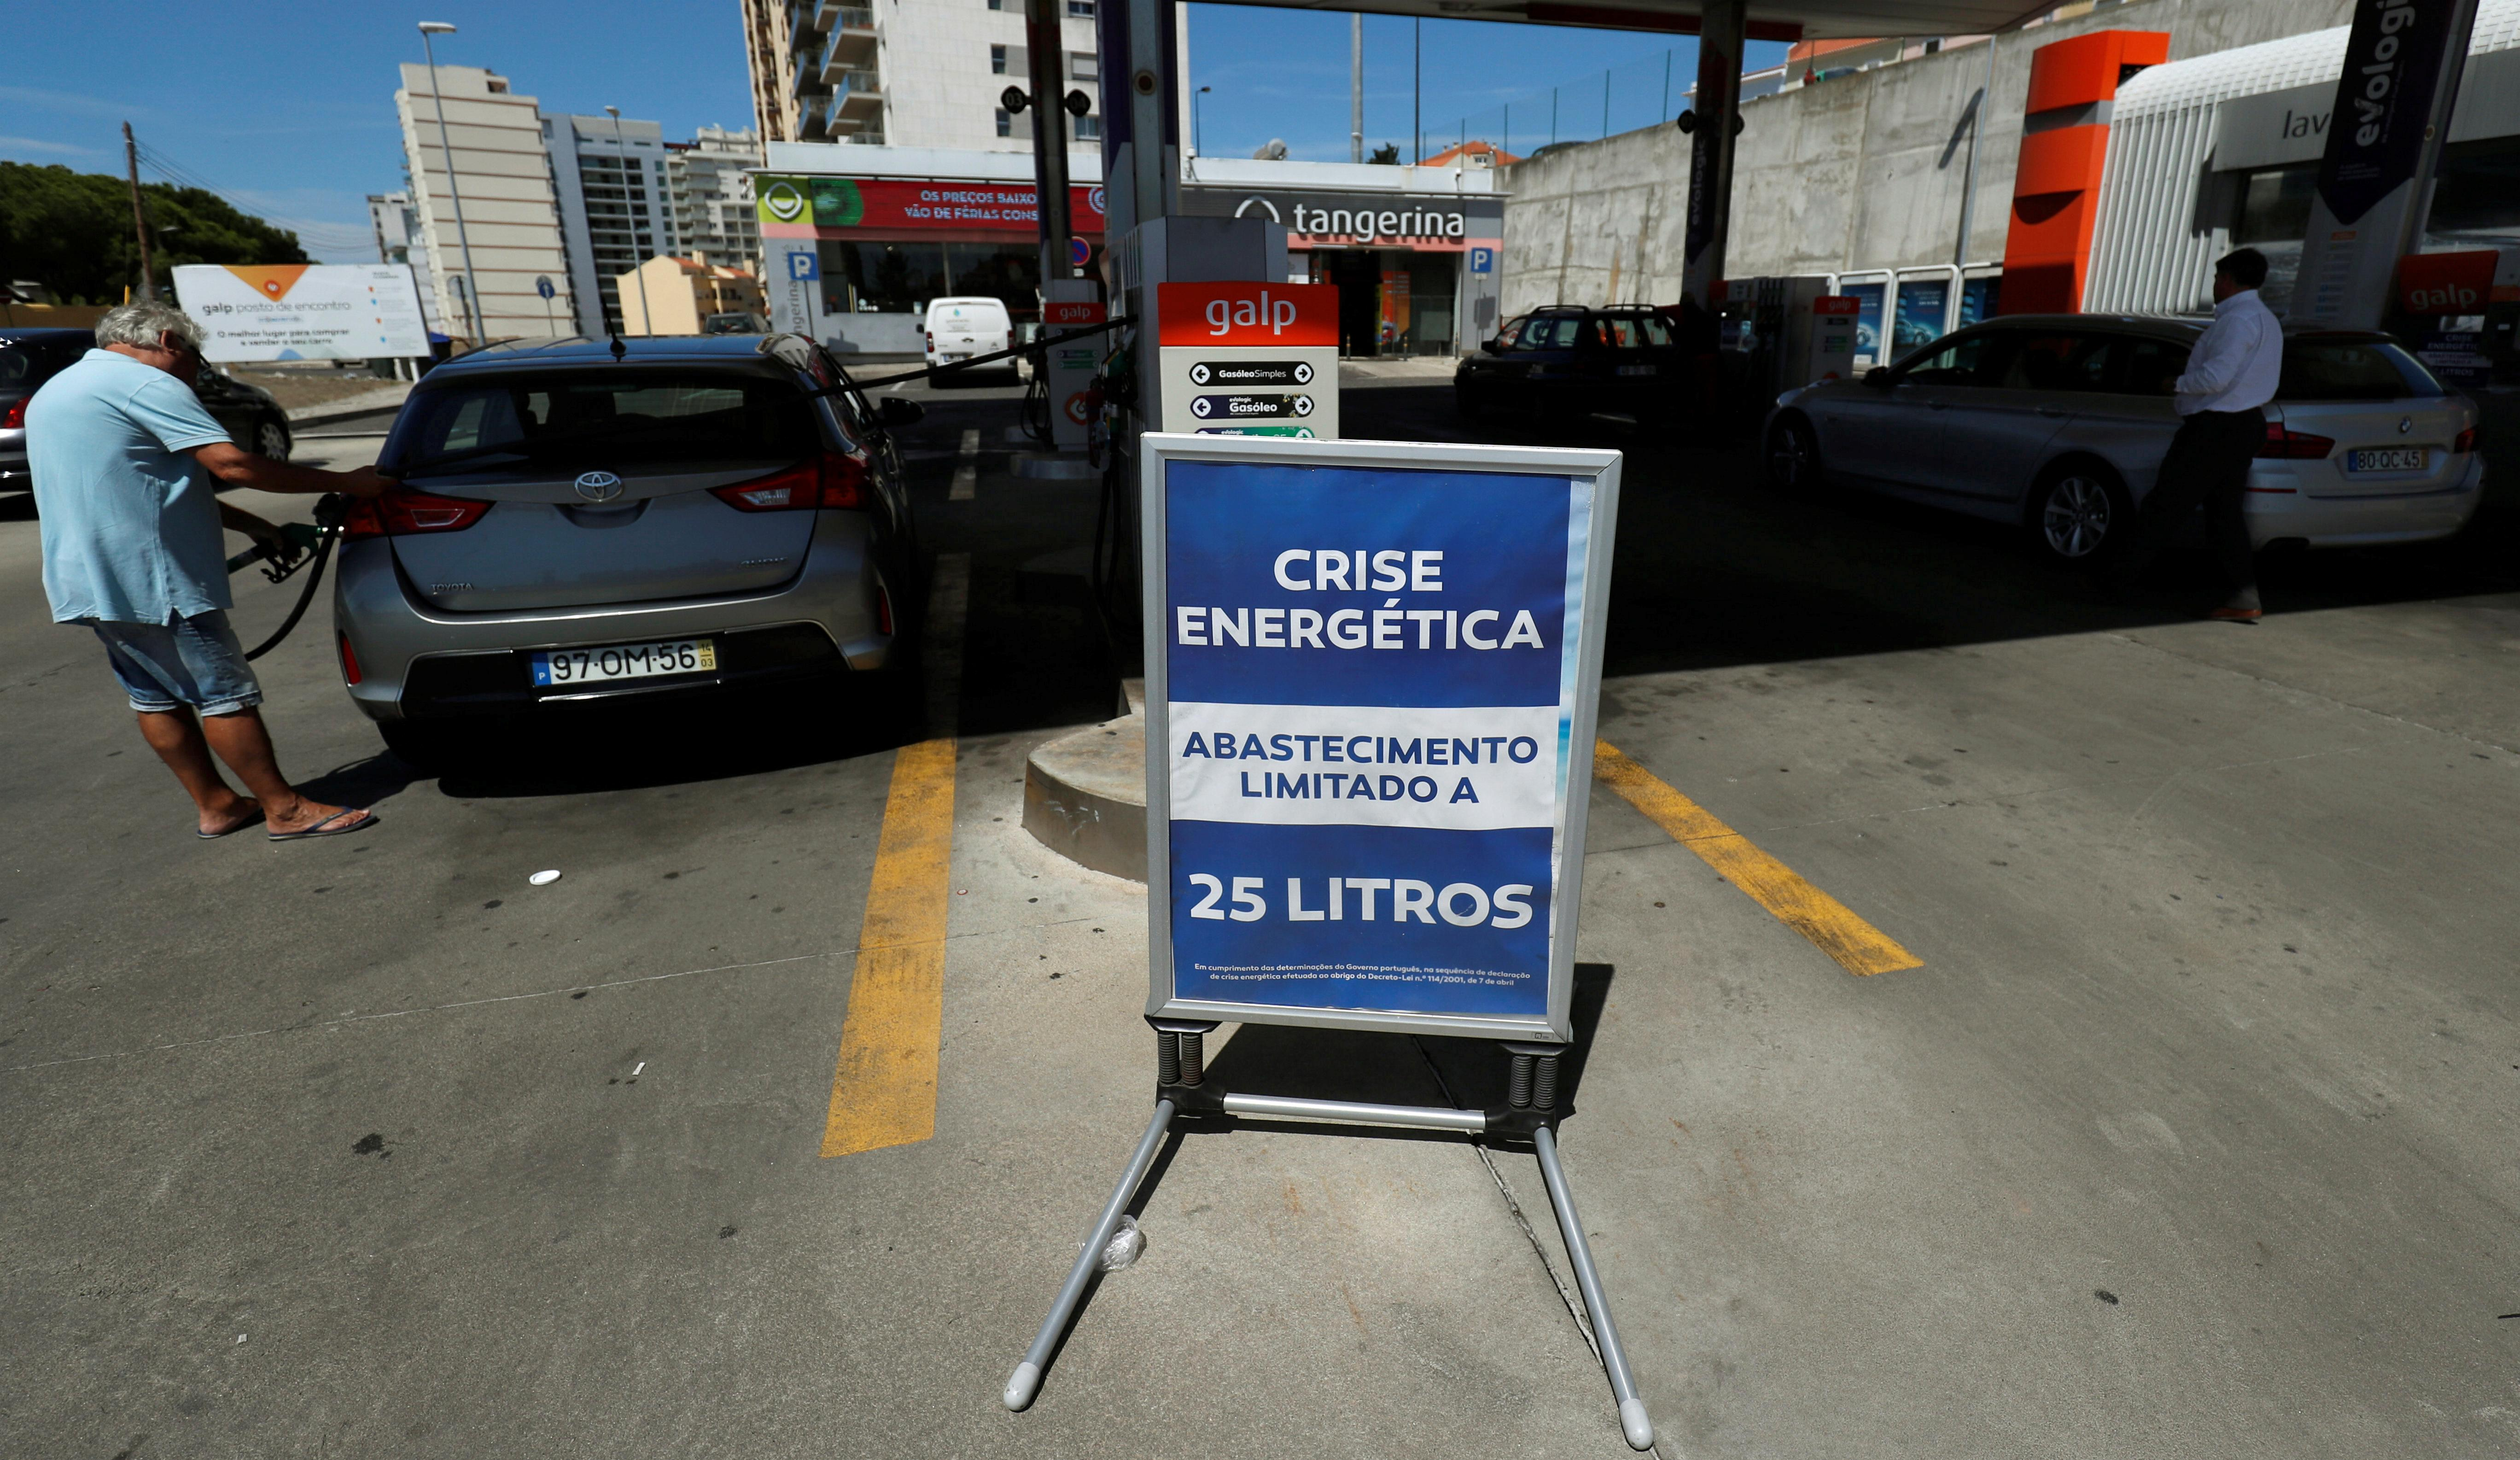 Portugal's fuel-tanker drivers back down, walkout continues